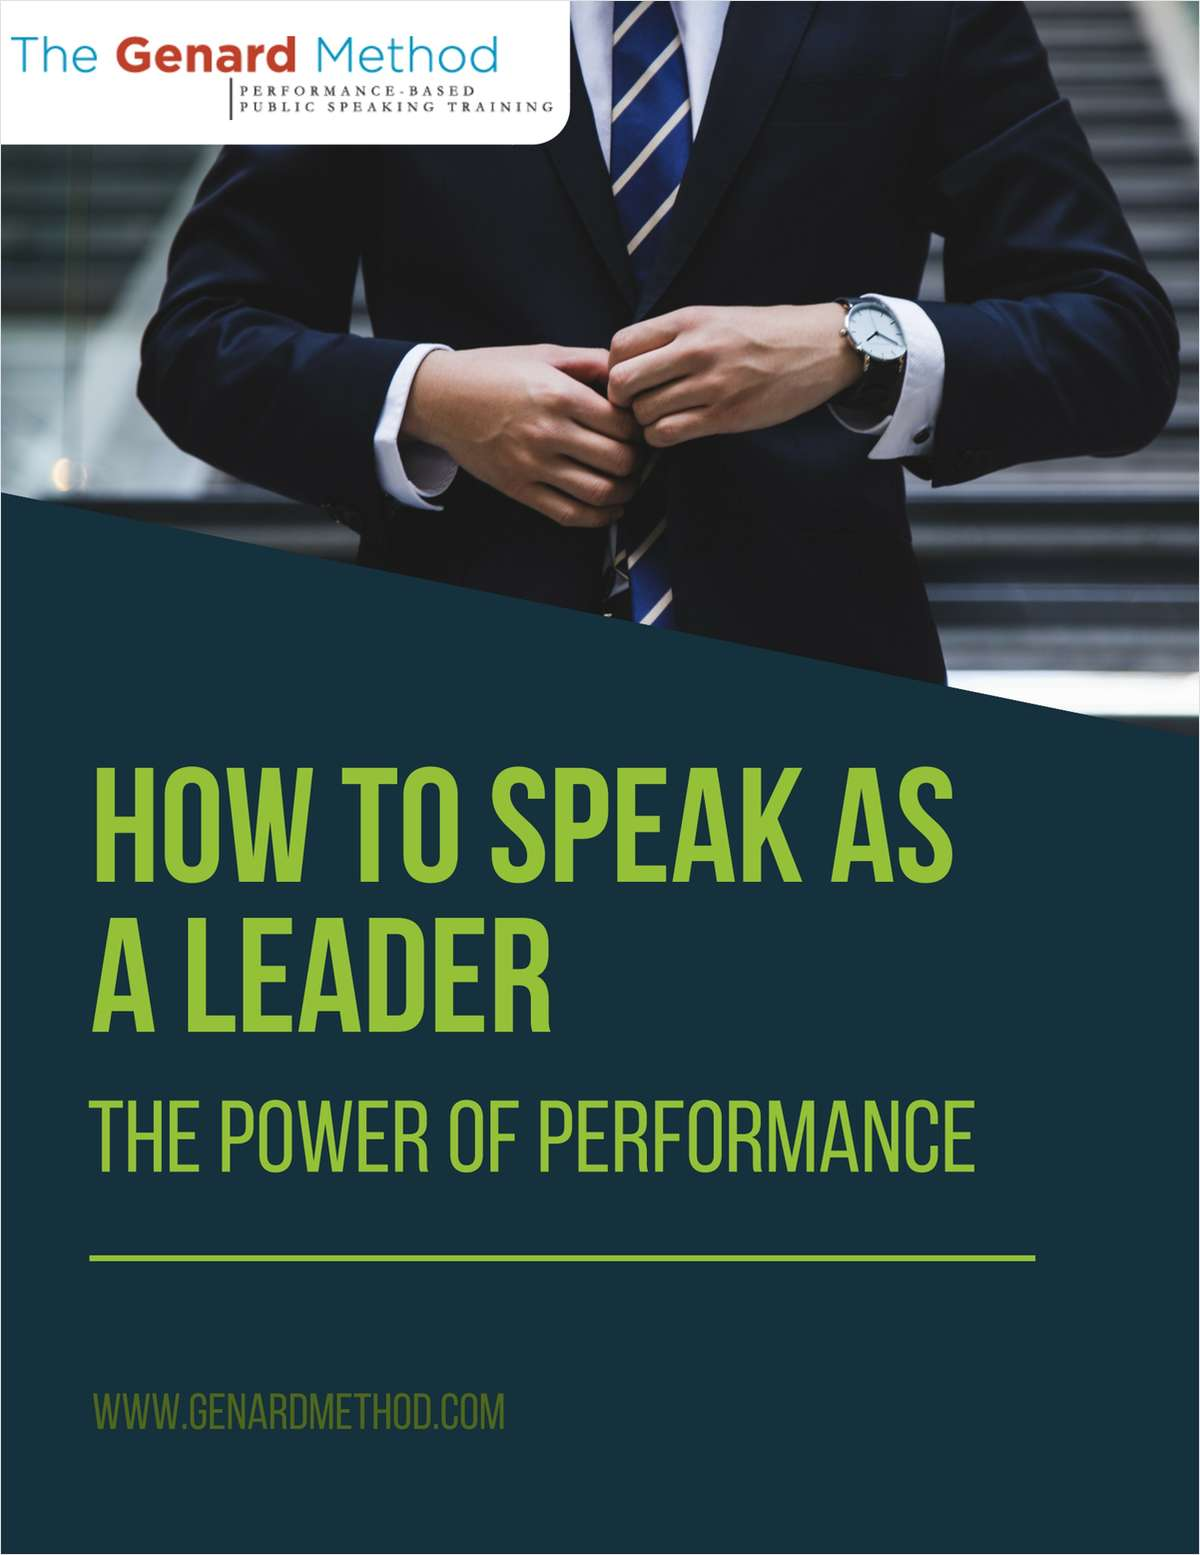 How To Speak as a Leader - The Power of Performance